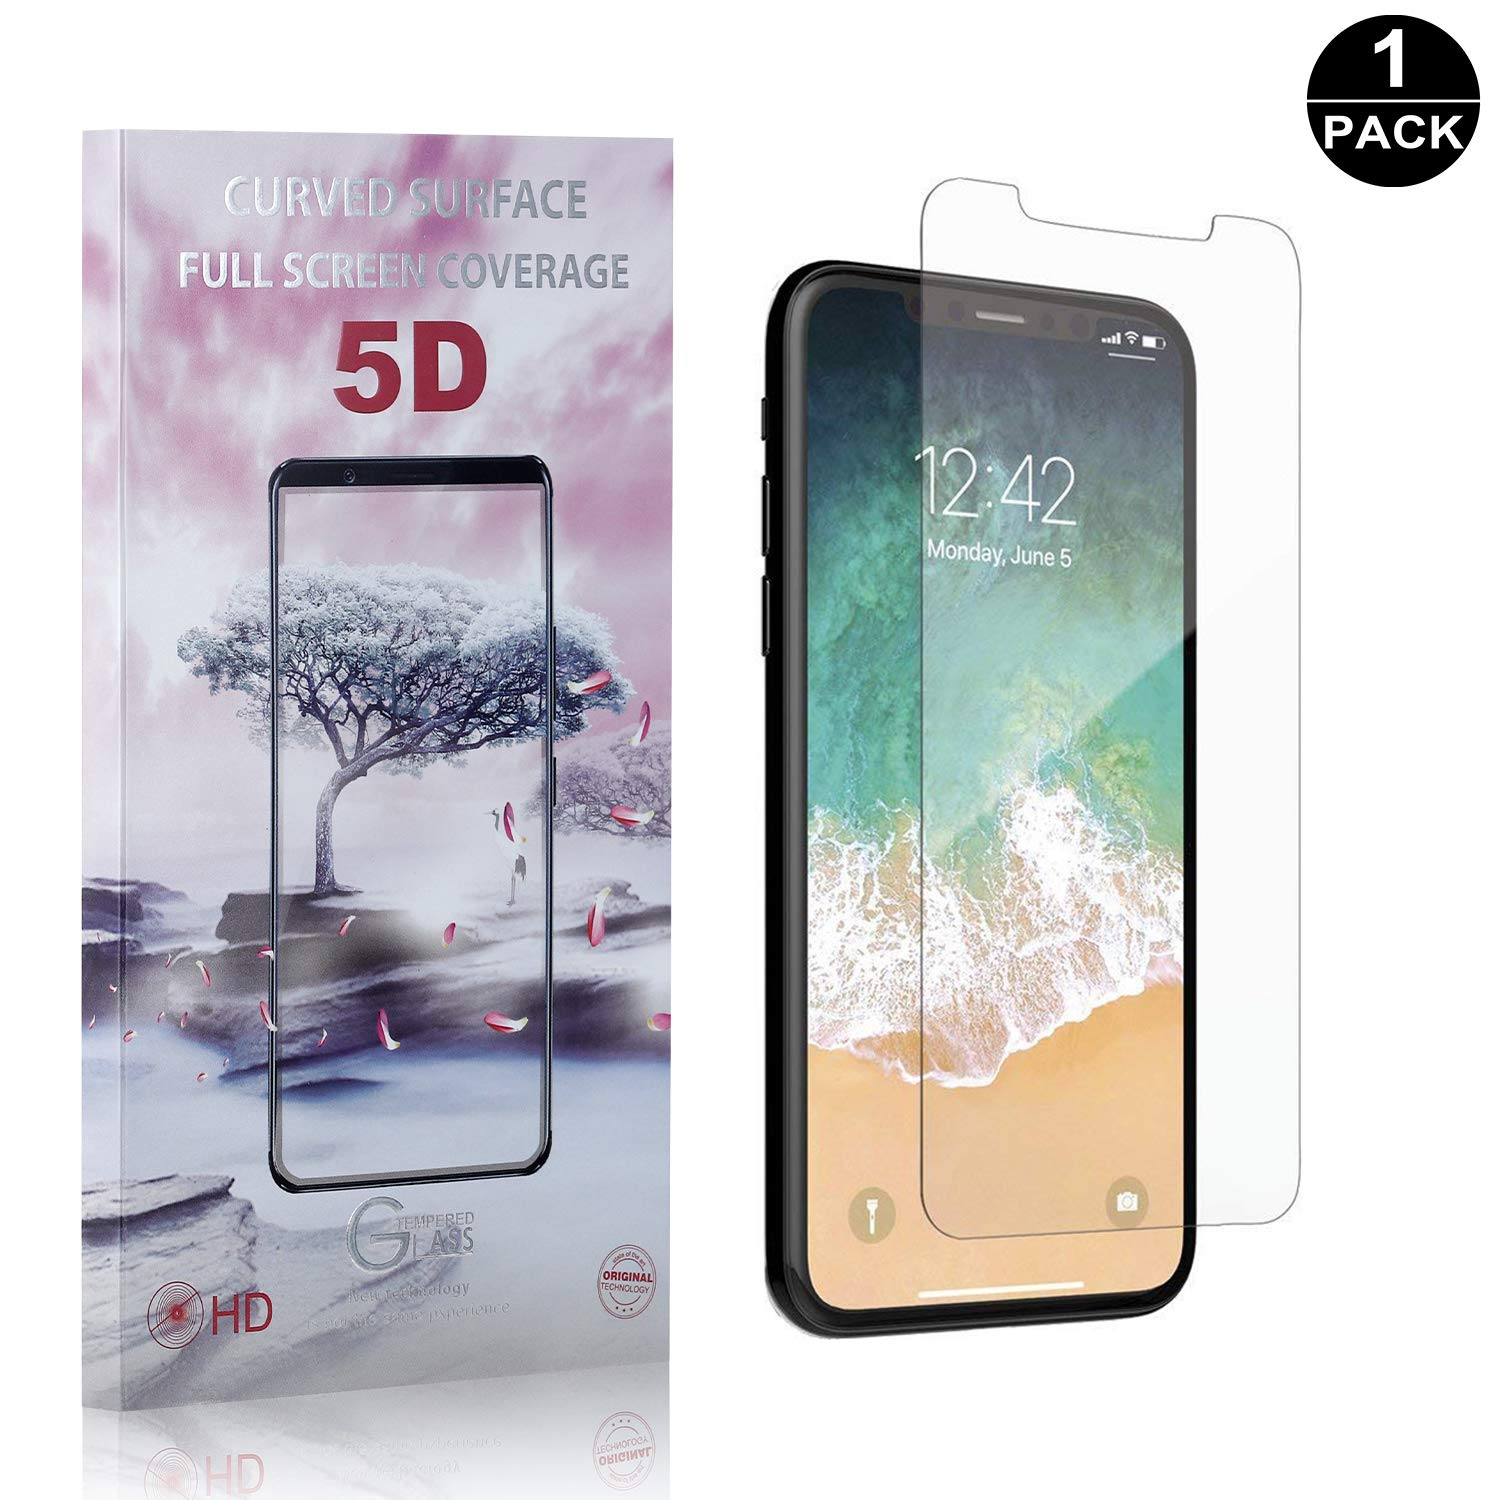 Keine Luftblasen Bear Village/® iPhone X//iPhone XS Displayschutzfolie Anti-Fingerabdruck 1 St/ück 3D Touch 9H Schutzfilm aus Geh/ärtetem Glas f/ür Apple iPhone X//iPhone XS